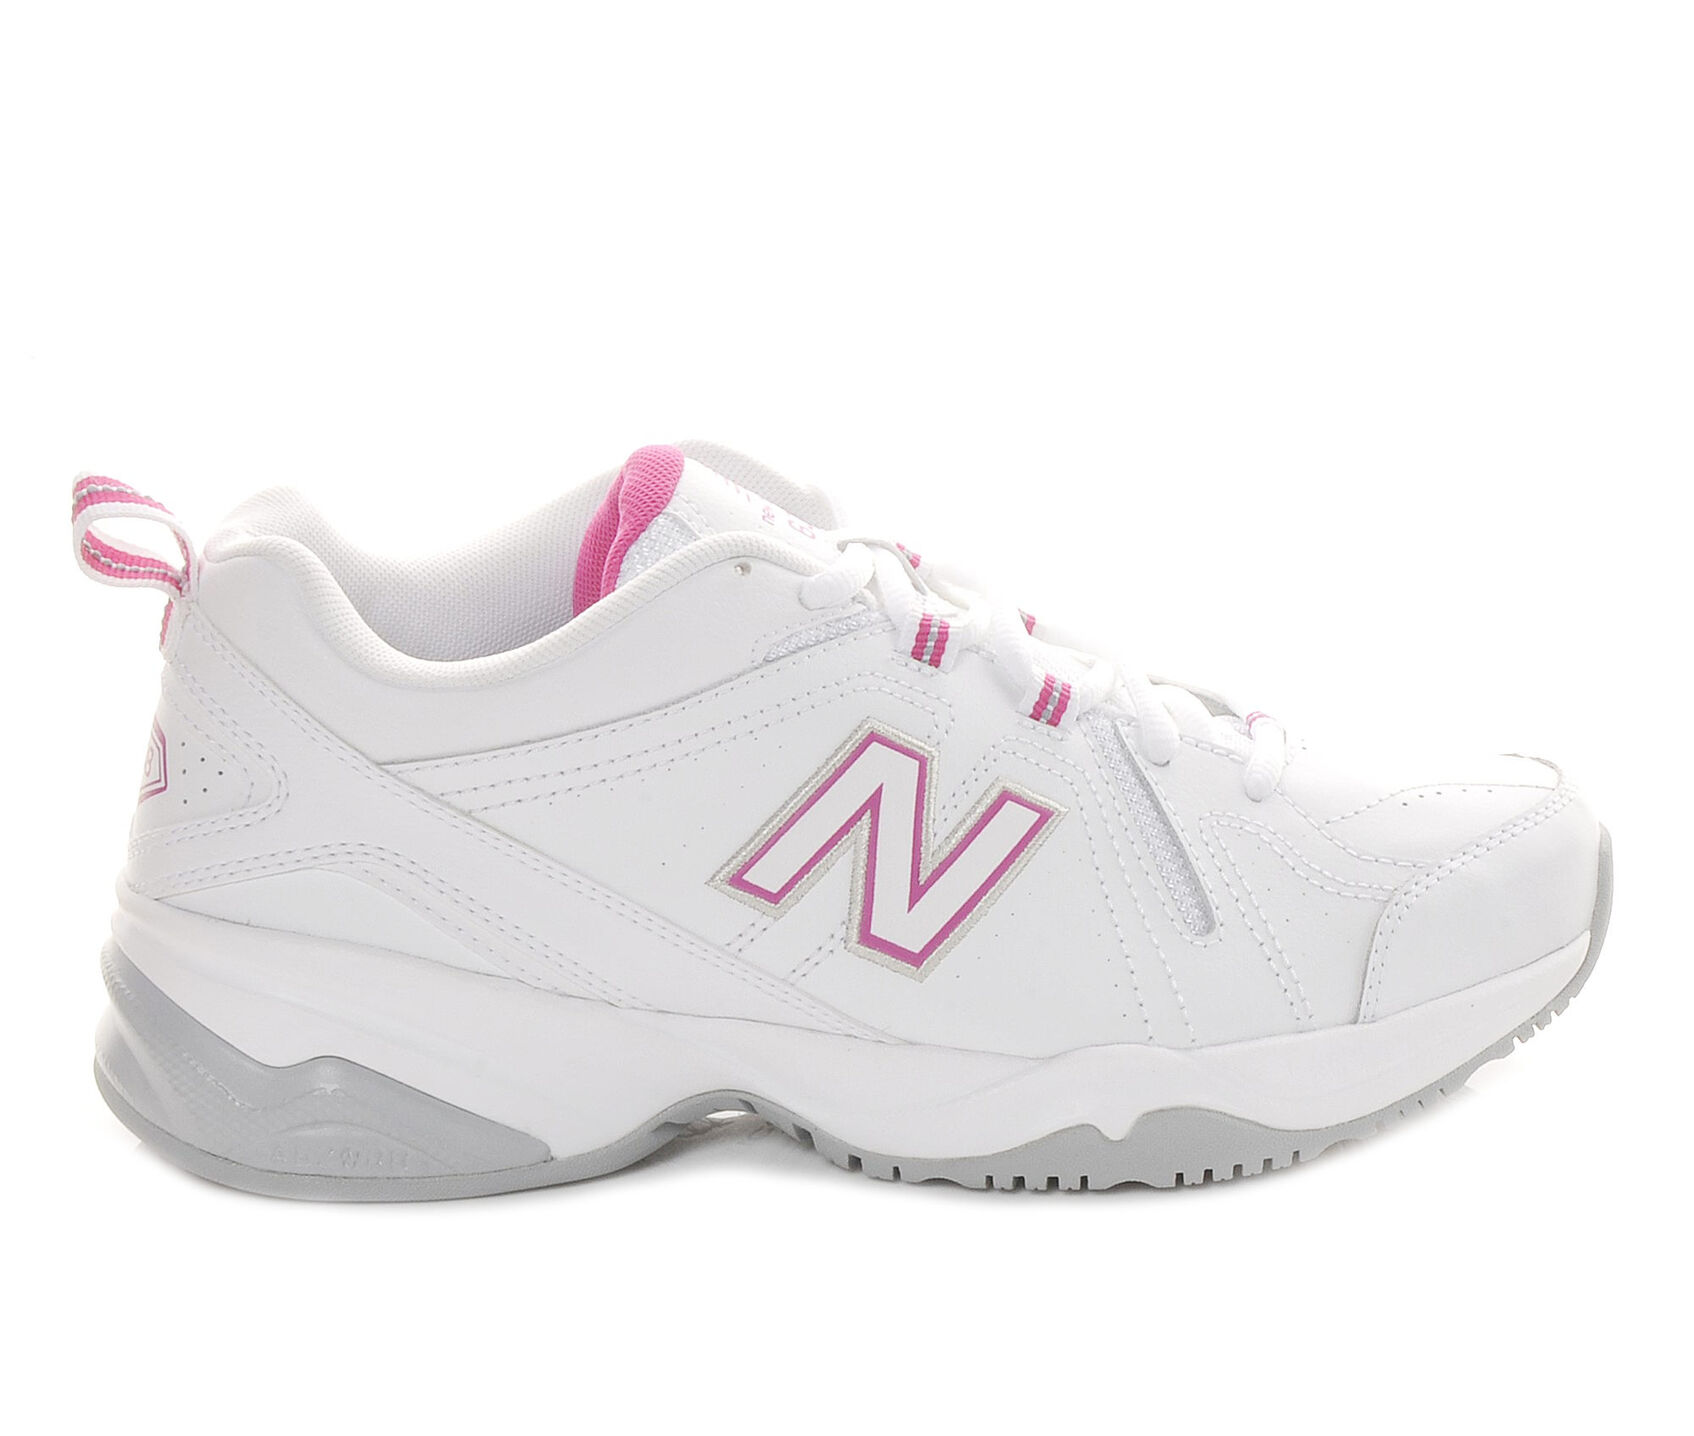 2e8215dc471b1 Women s New Balance WX608V4 Training Shoes